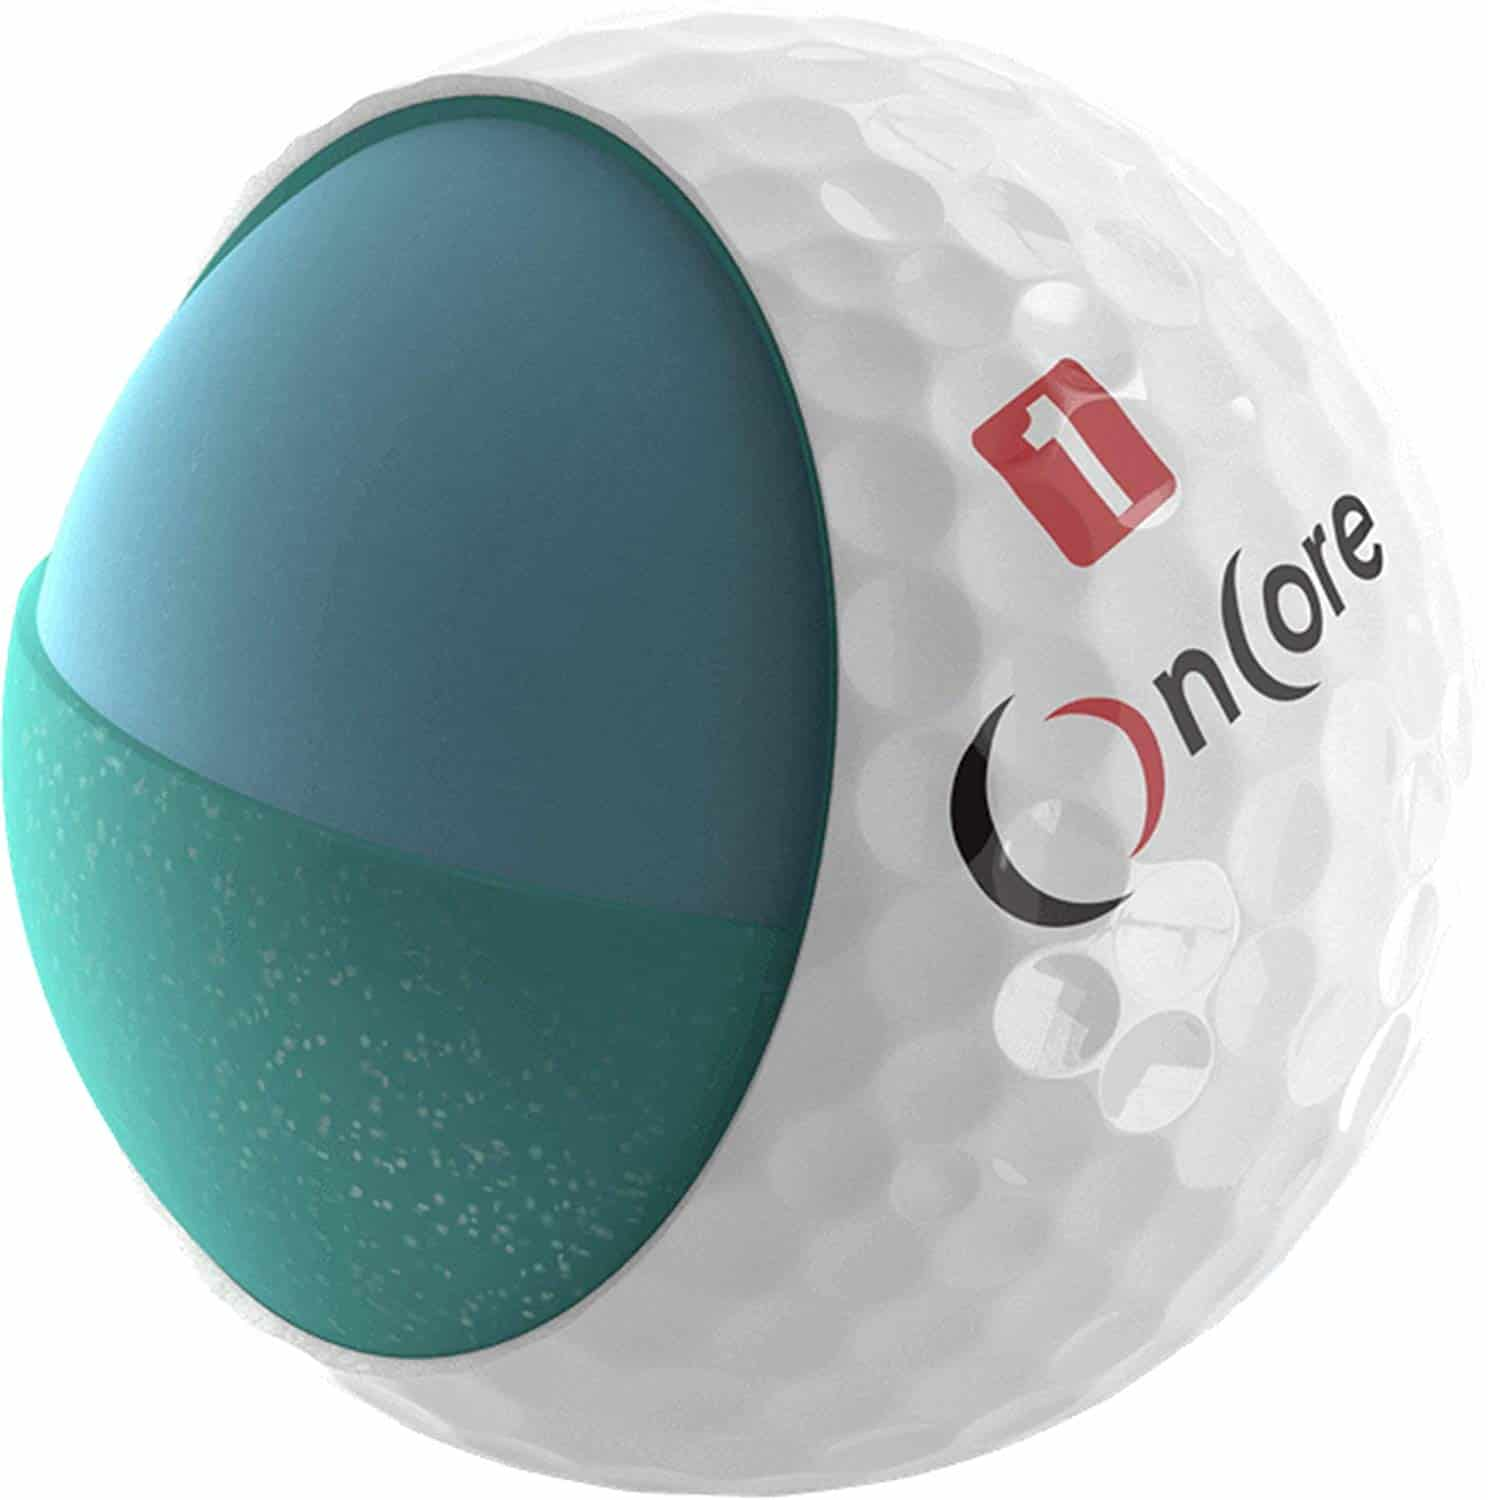 best golf balls for cold weather